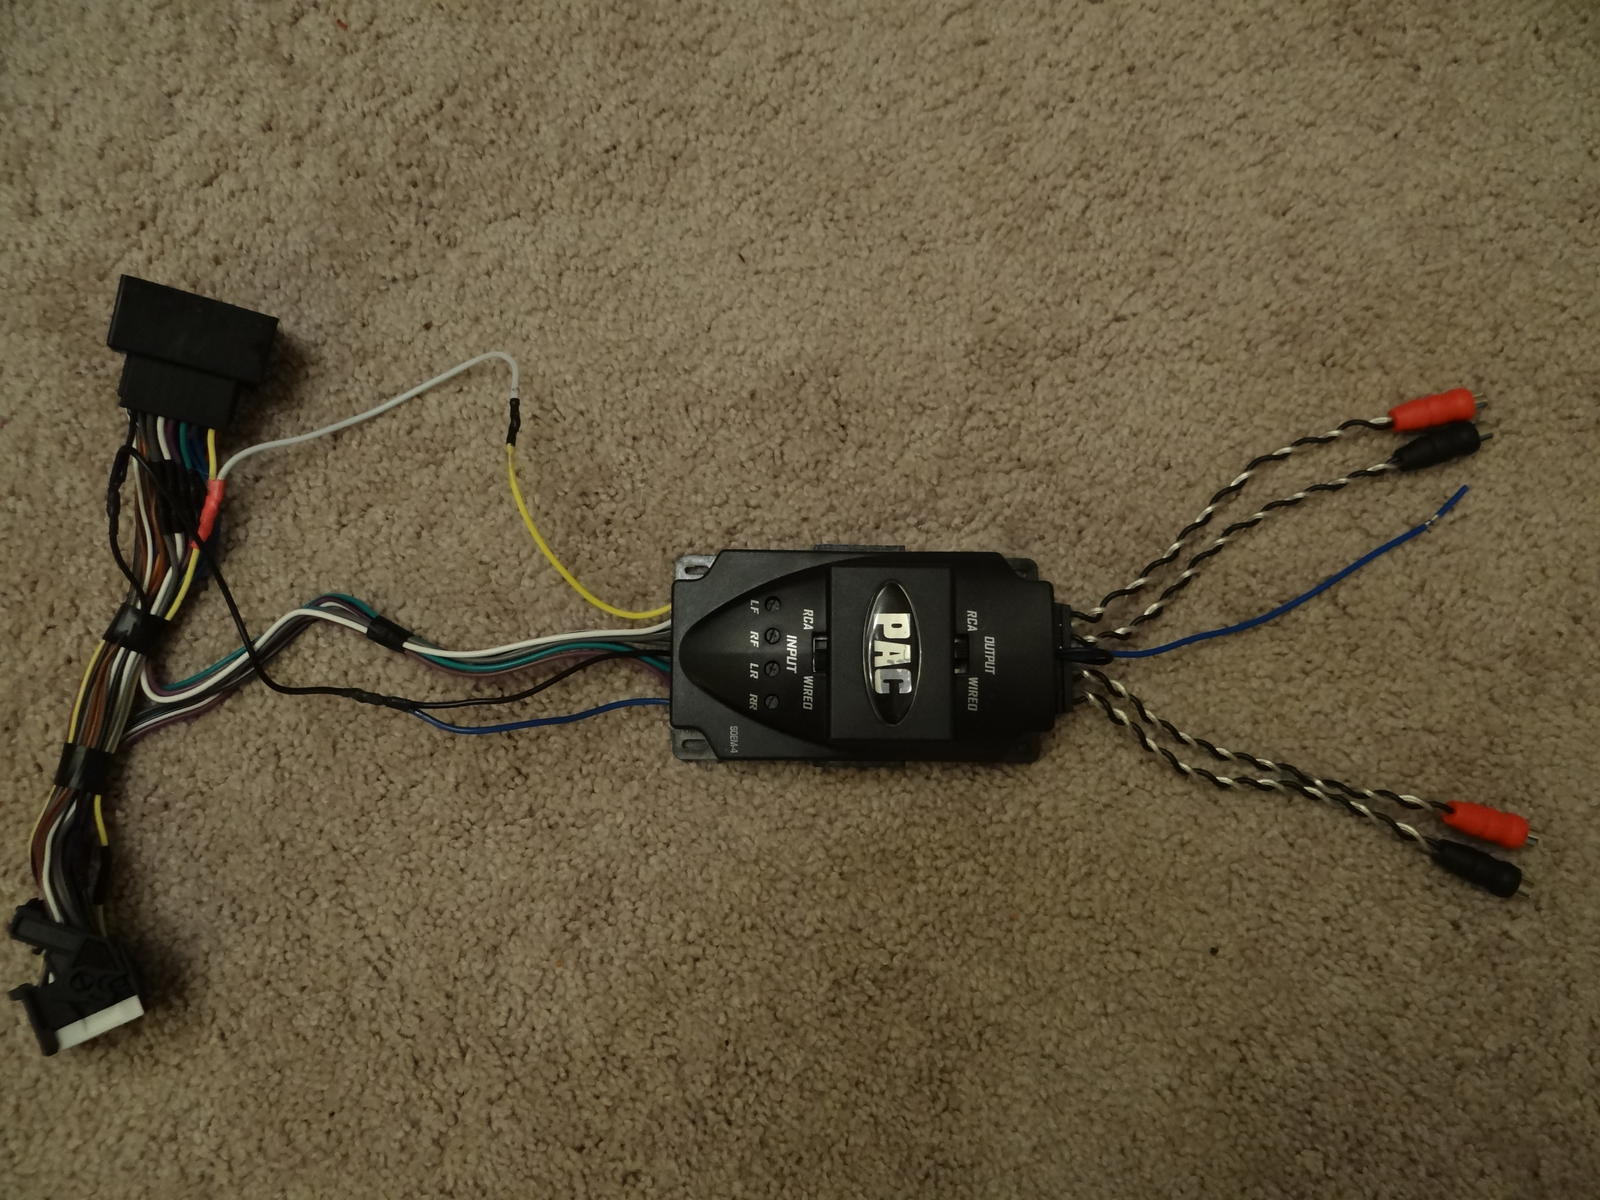 99786d1406278616 aa gm44 wiring questions how dsc02487 aa gm44 wiring questions how to ? Pac Cutting Diagram at bayanpartner.co